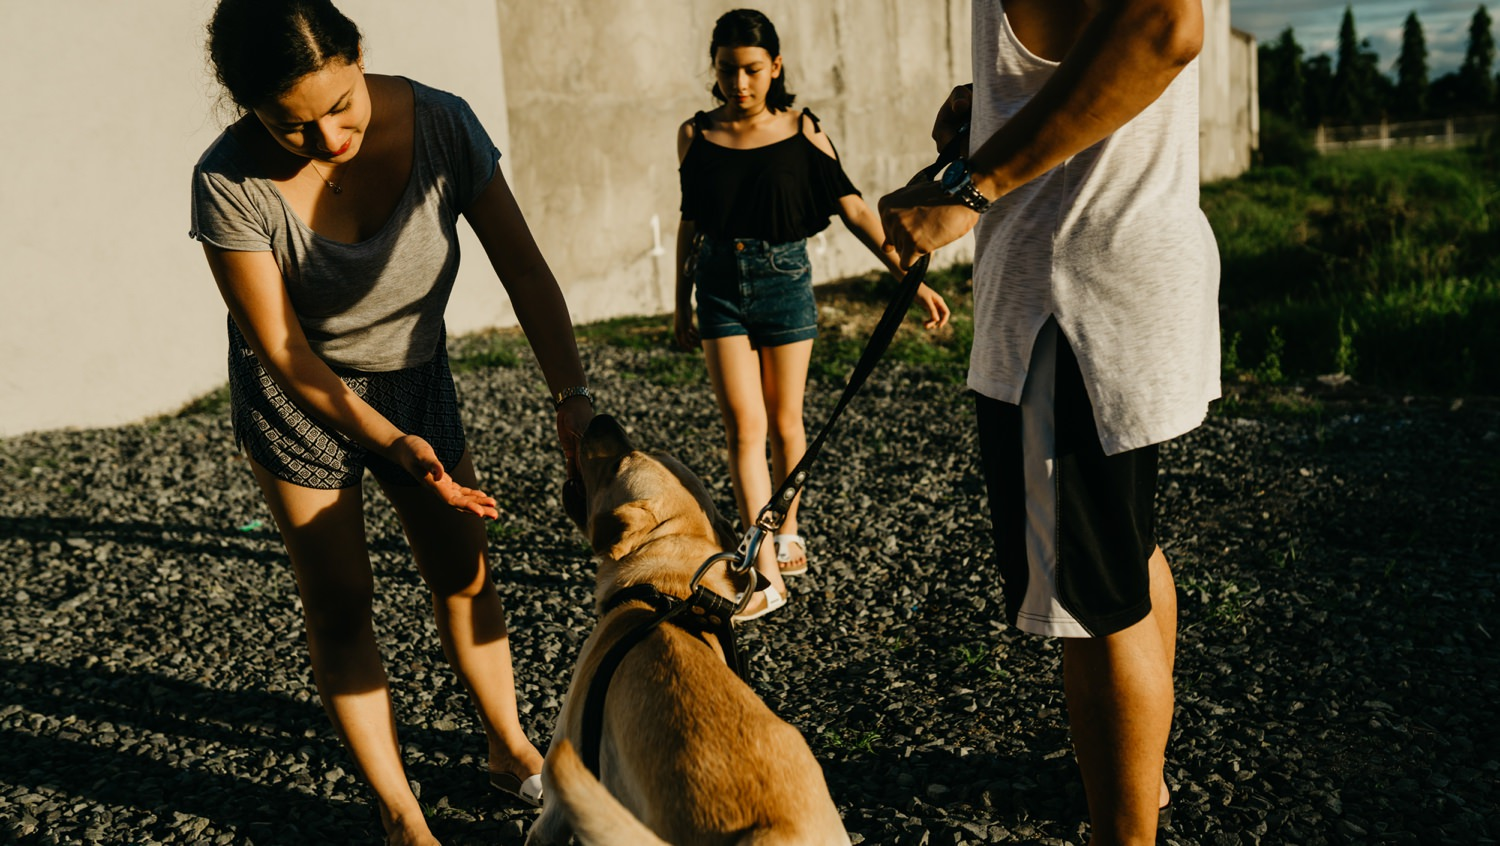 stories by mina - A day in the life - Elyra, Sophie, Pyros, 7 cats, and chief the dog - family photographer - philippines